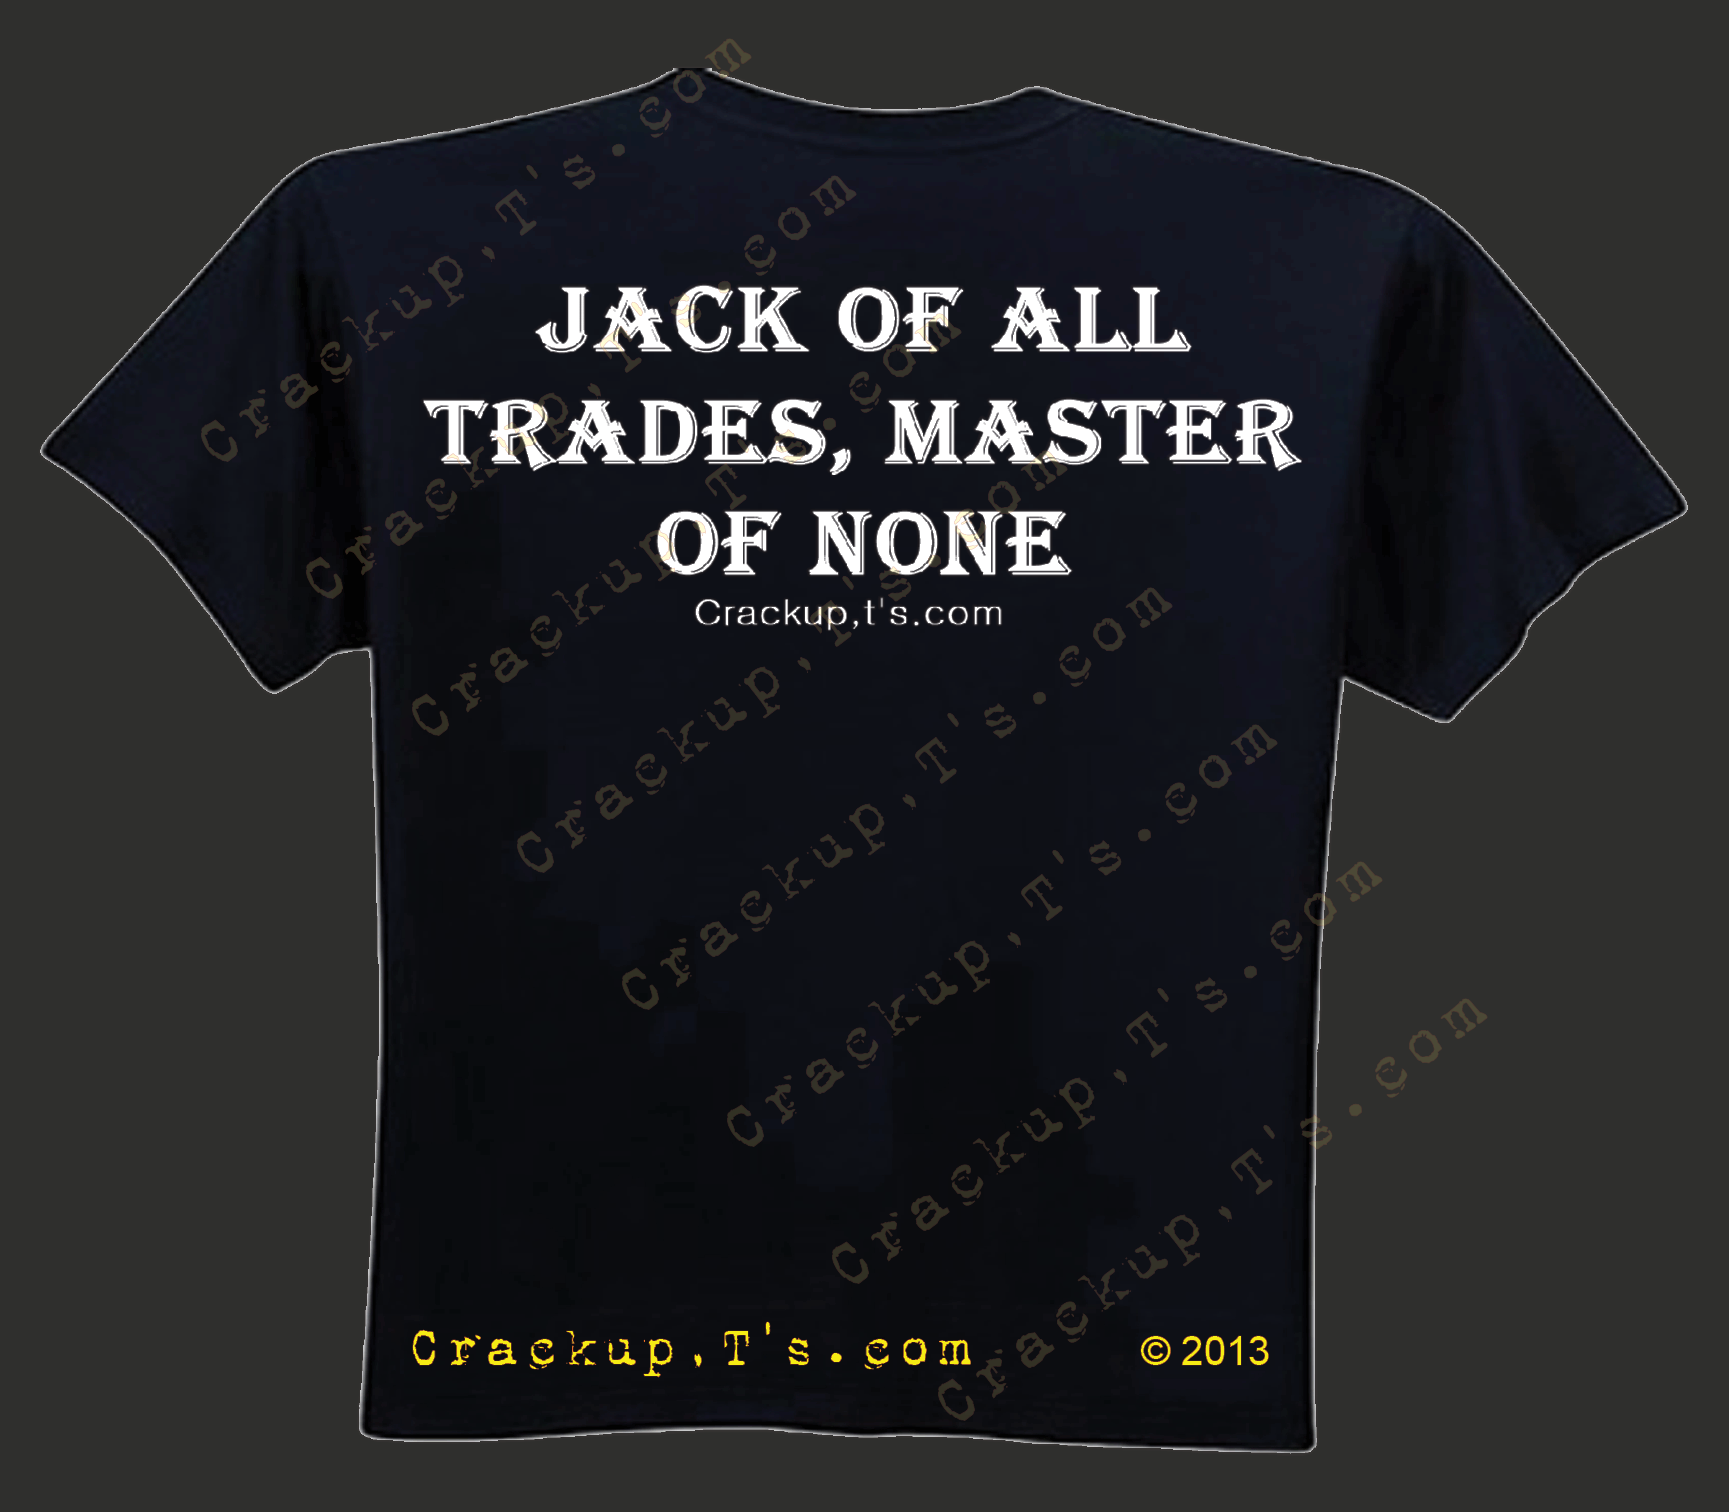 """jack of all trades and master of none essay Essay on top 5 reasons to be a jack of all trades 1 the top 5 reasons to be a jack of all trades tim ferriss #5 